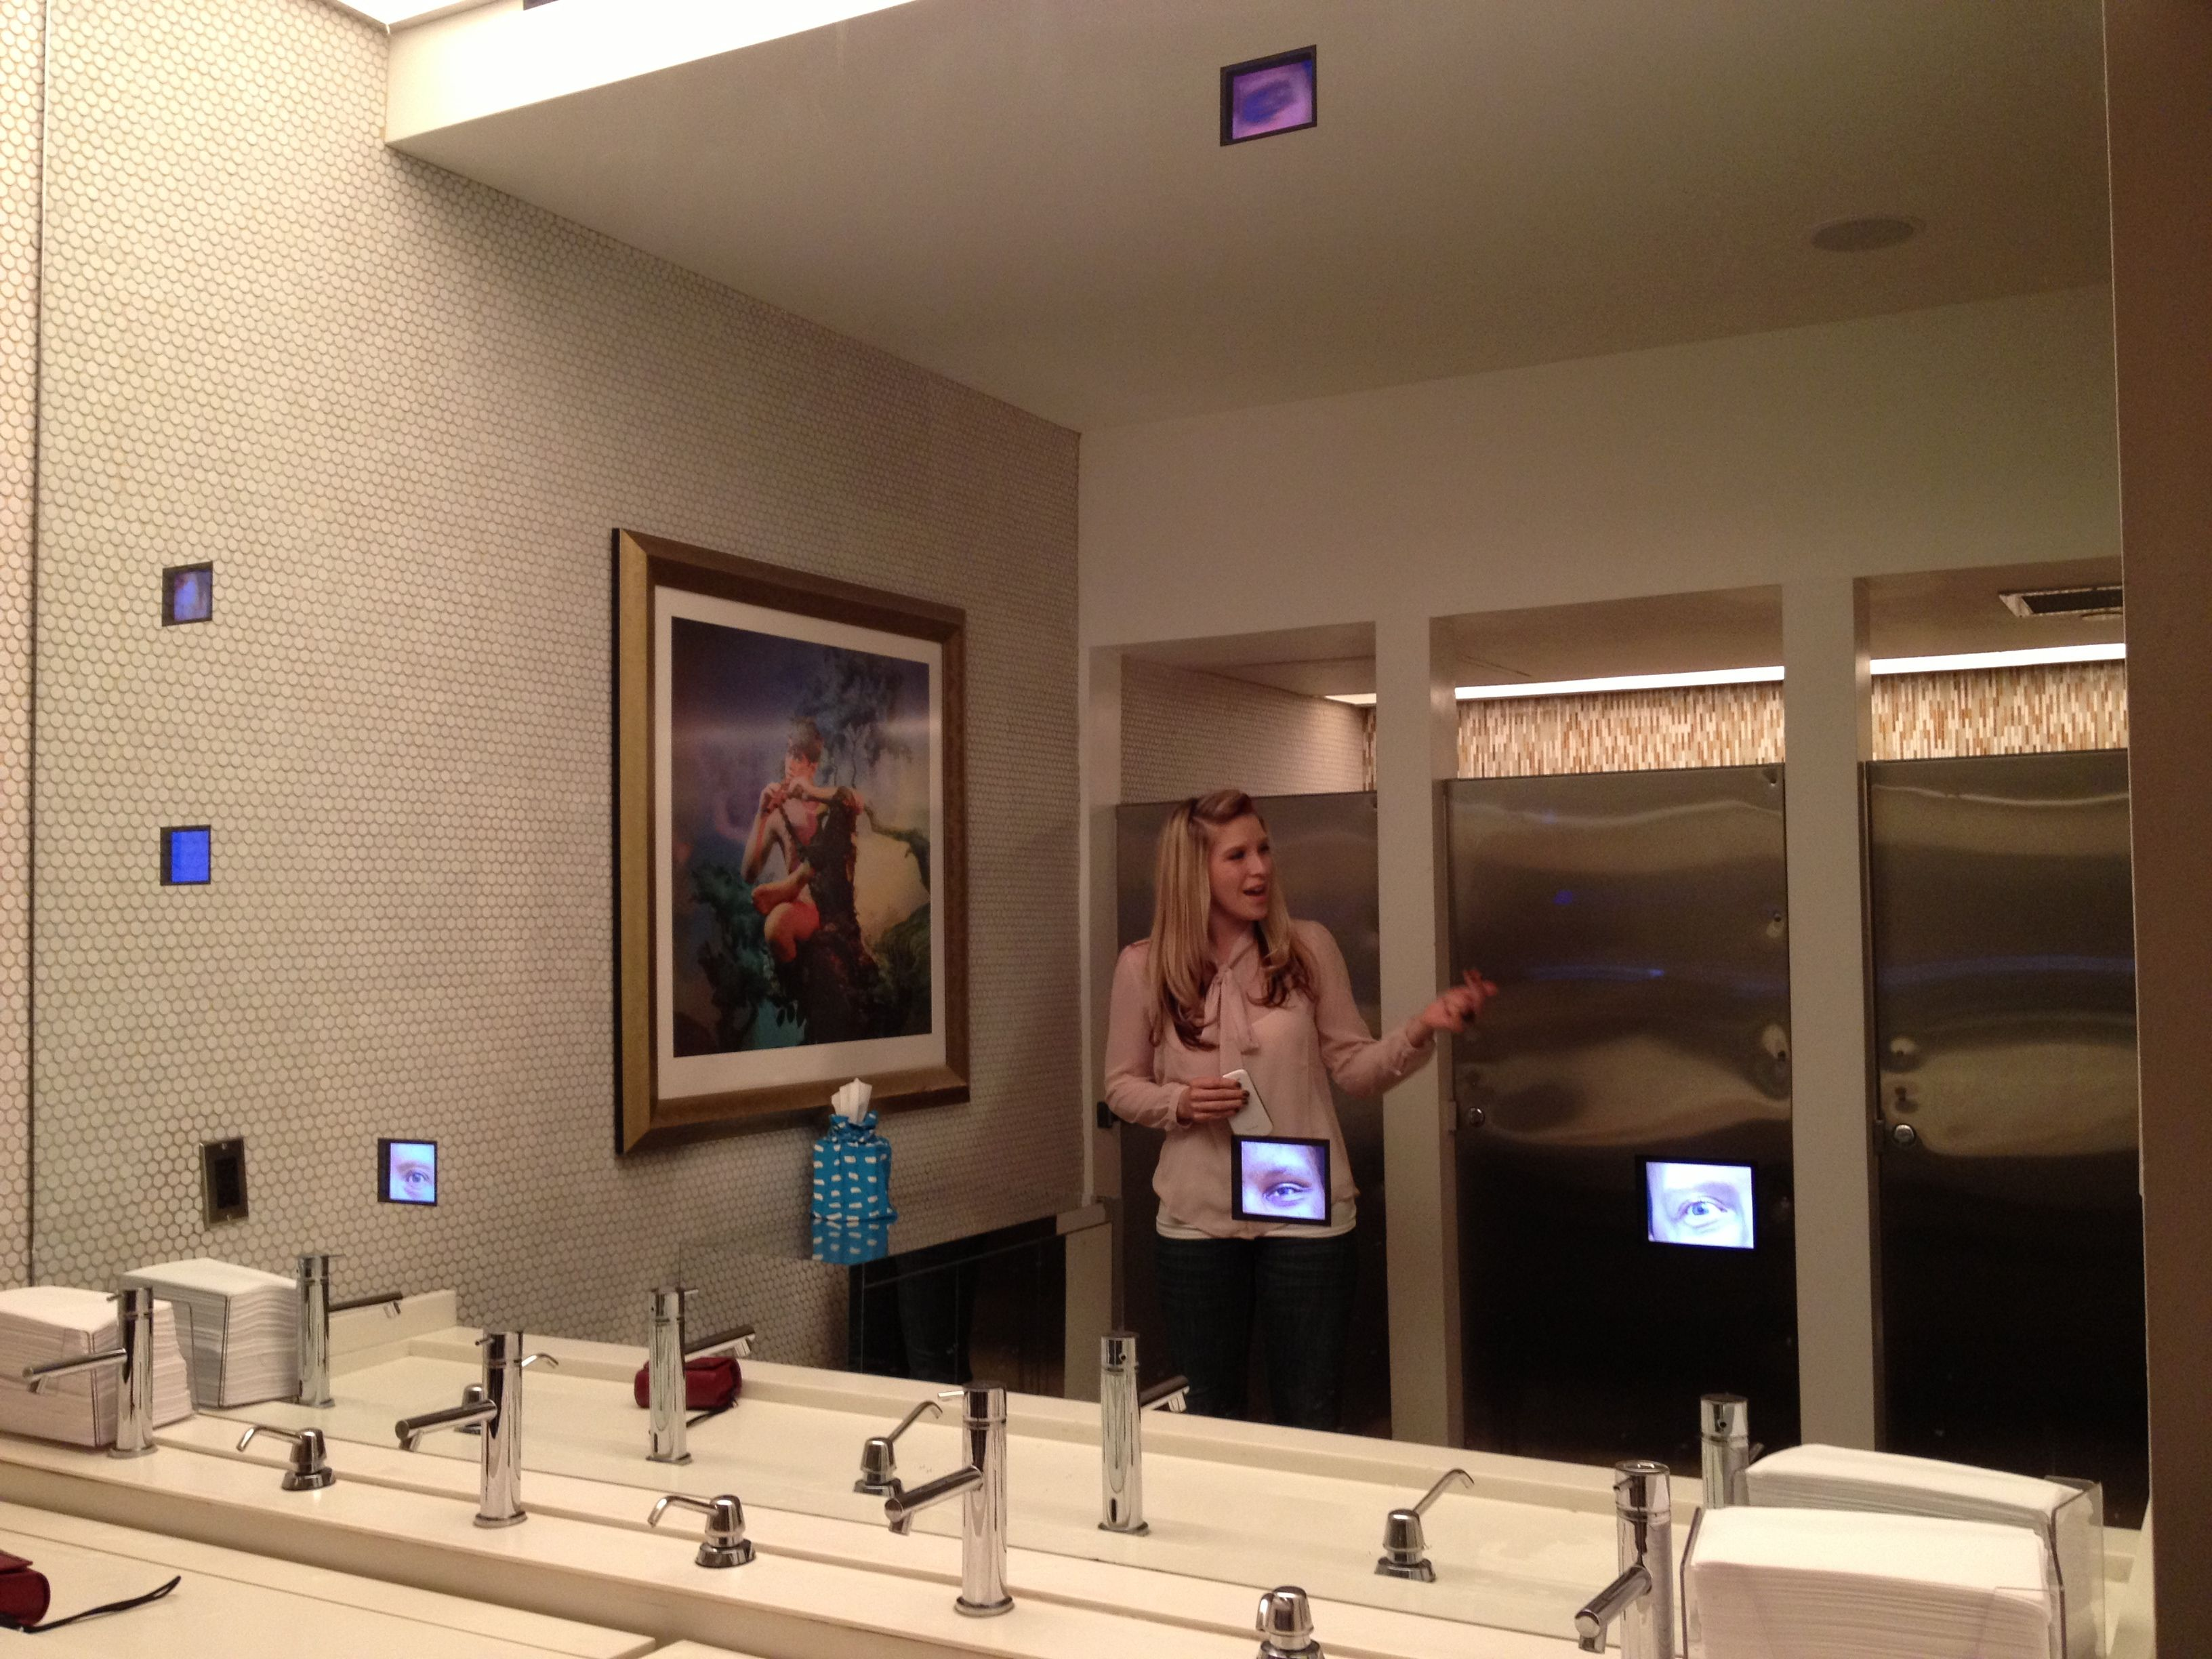 Restroom shared by proof on main and the 21c museum hotel in louisville ky small tv screens for Bathroom mirrors louisville ky